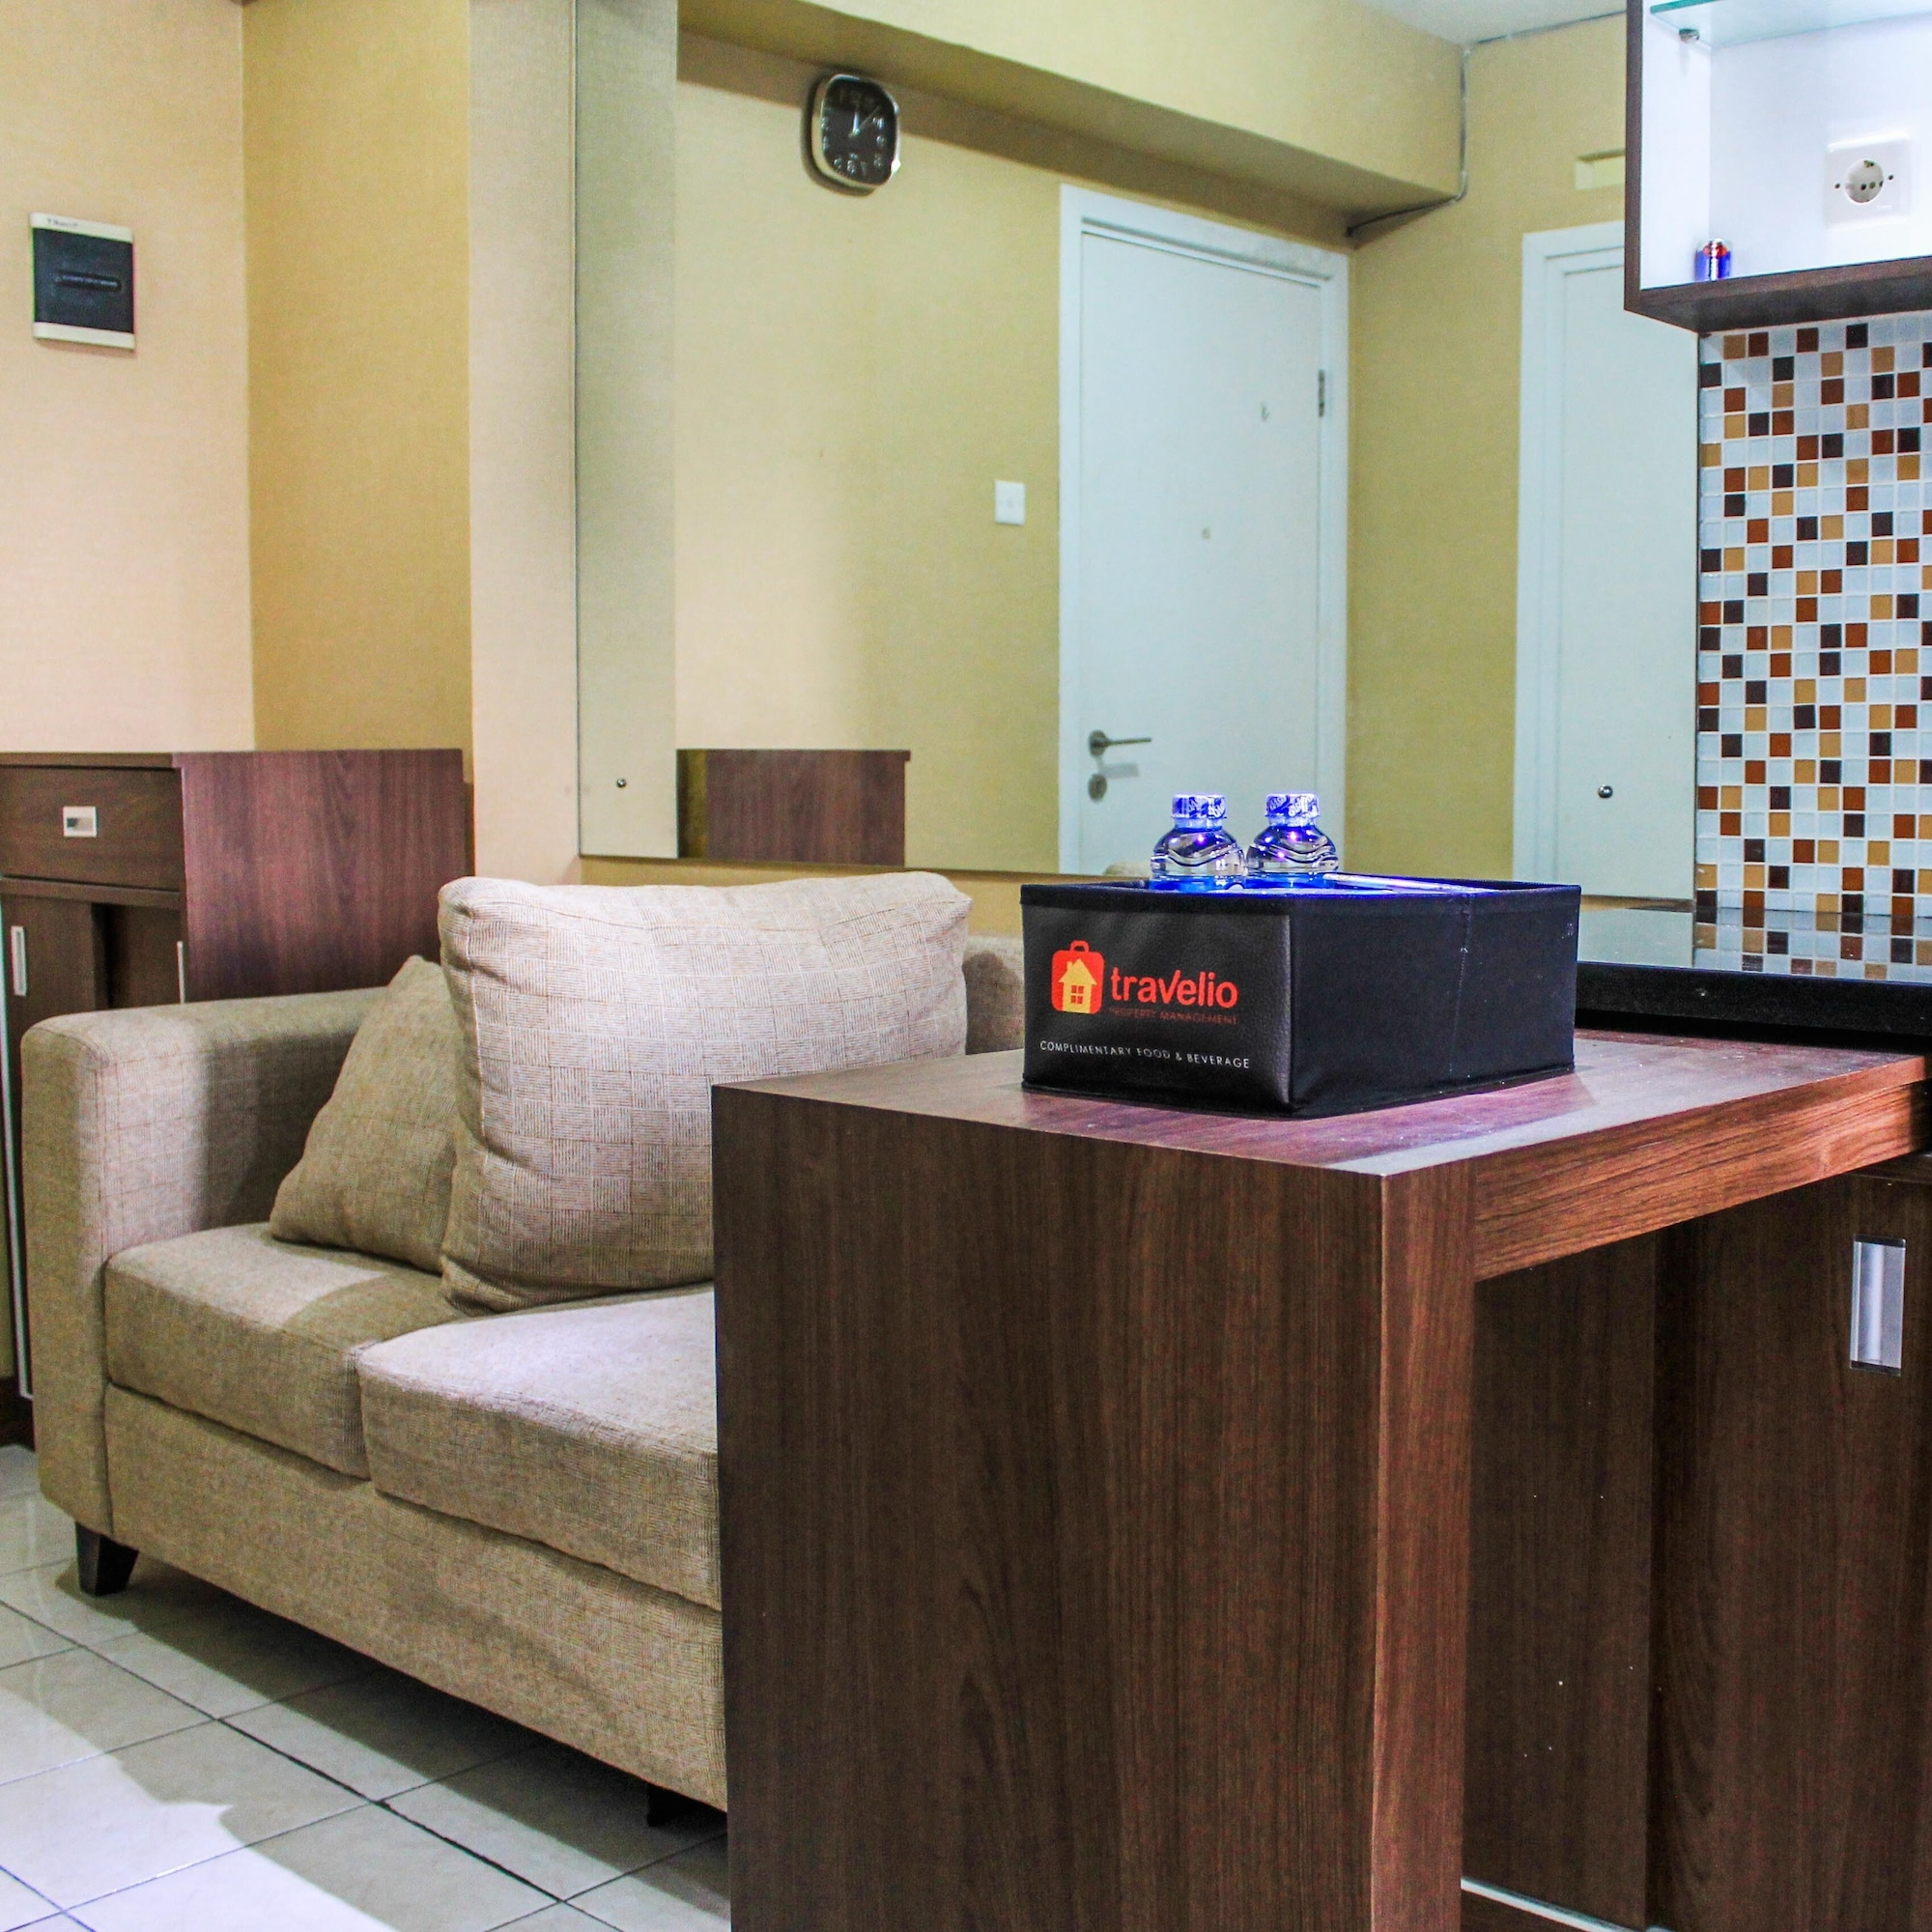 Comfortable and Tranquil 2BR Apartment at Green Pramuka By Travelio, Jakarta Pusat